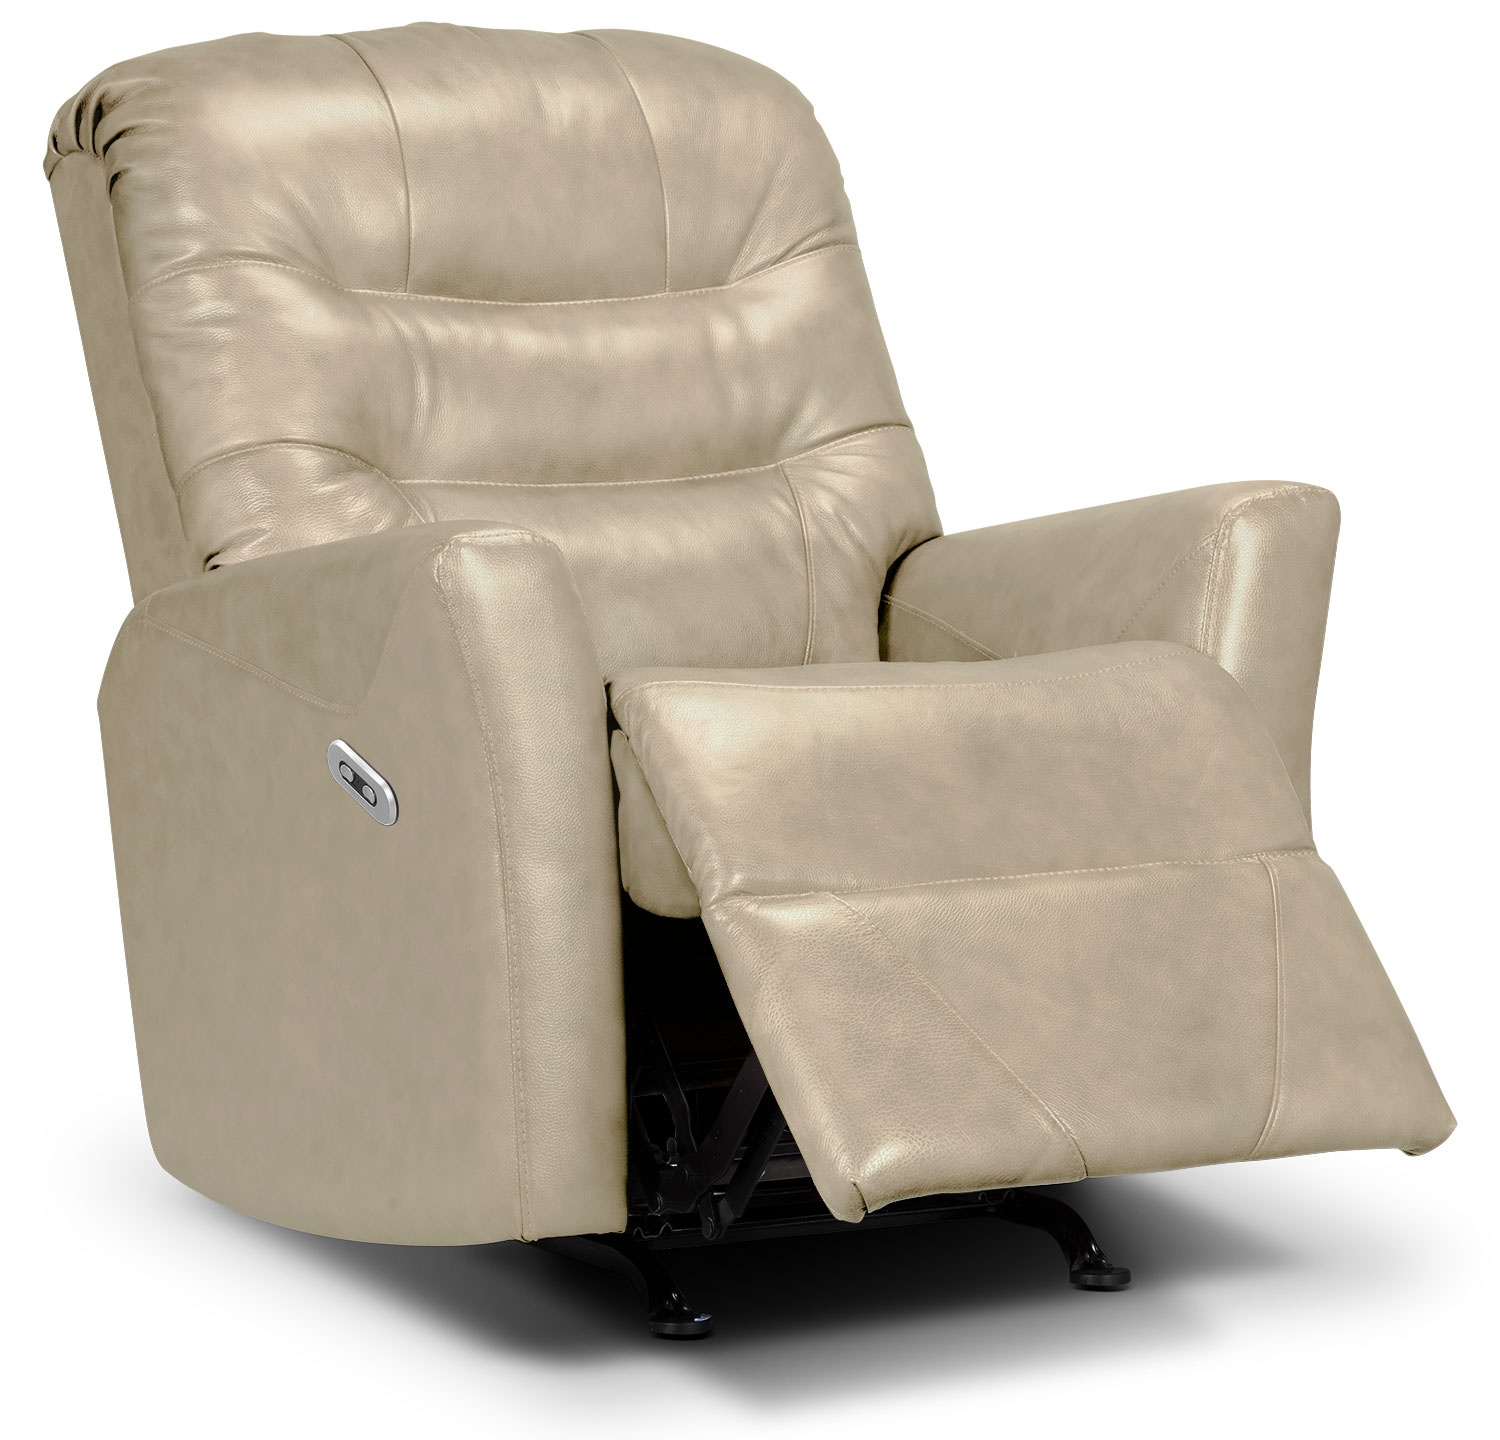 Living Room Furniture - Designed2B Recliner 4560 Genuine Leather Power Recliner - Taupe